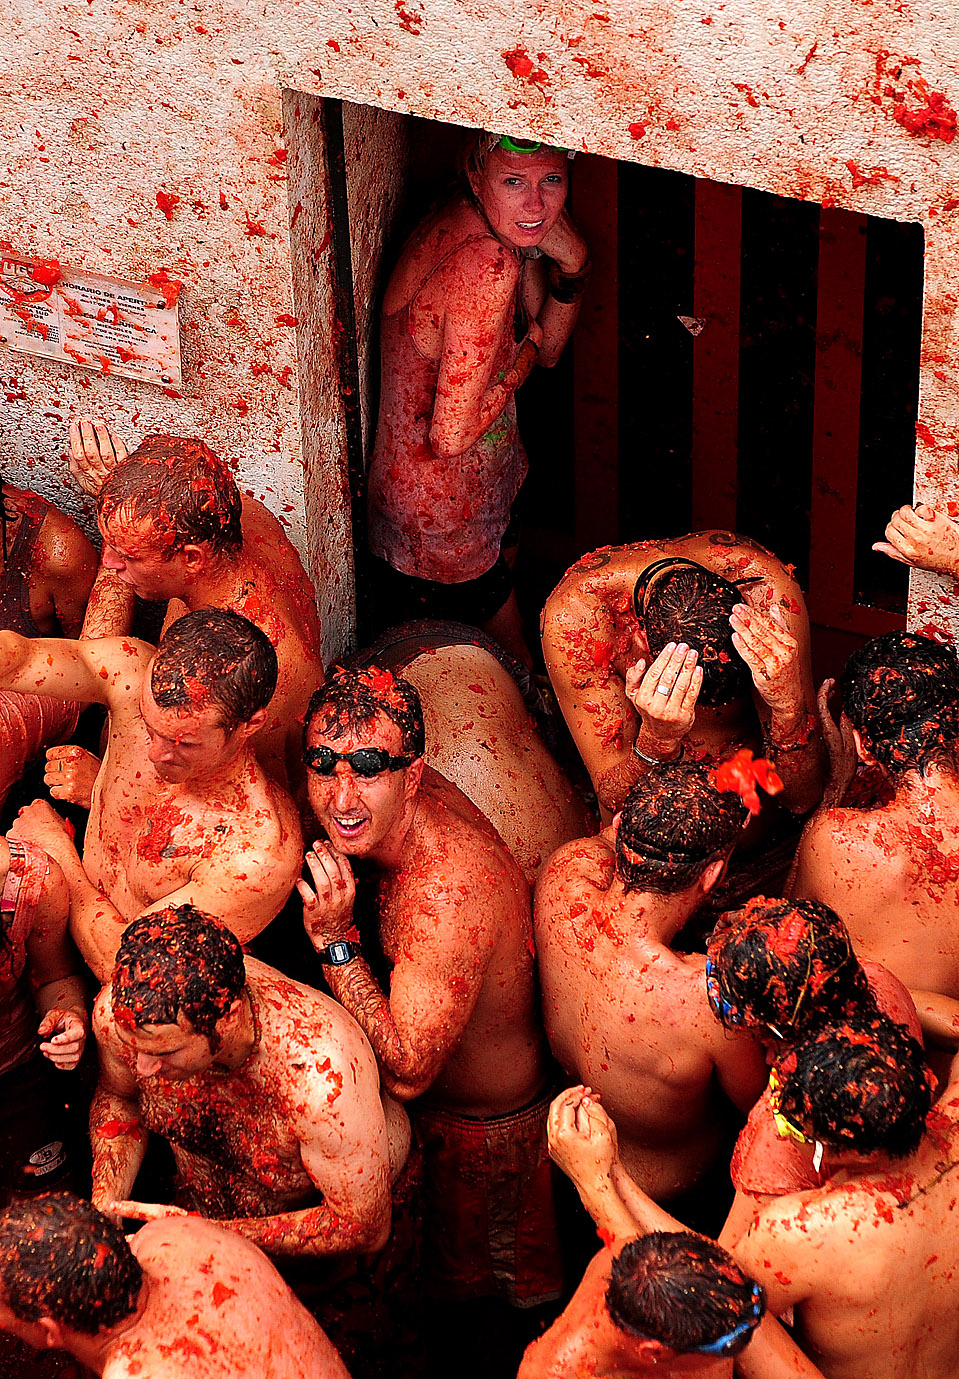 la tomatina food fight bunol spain